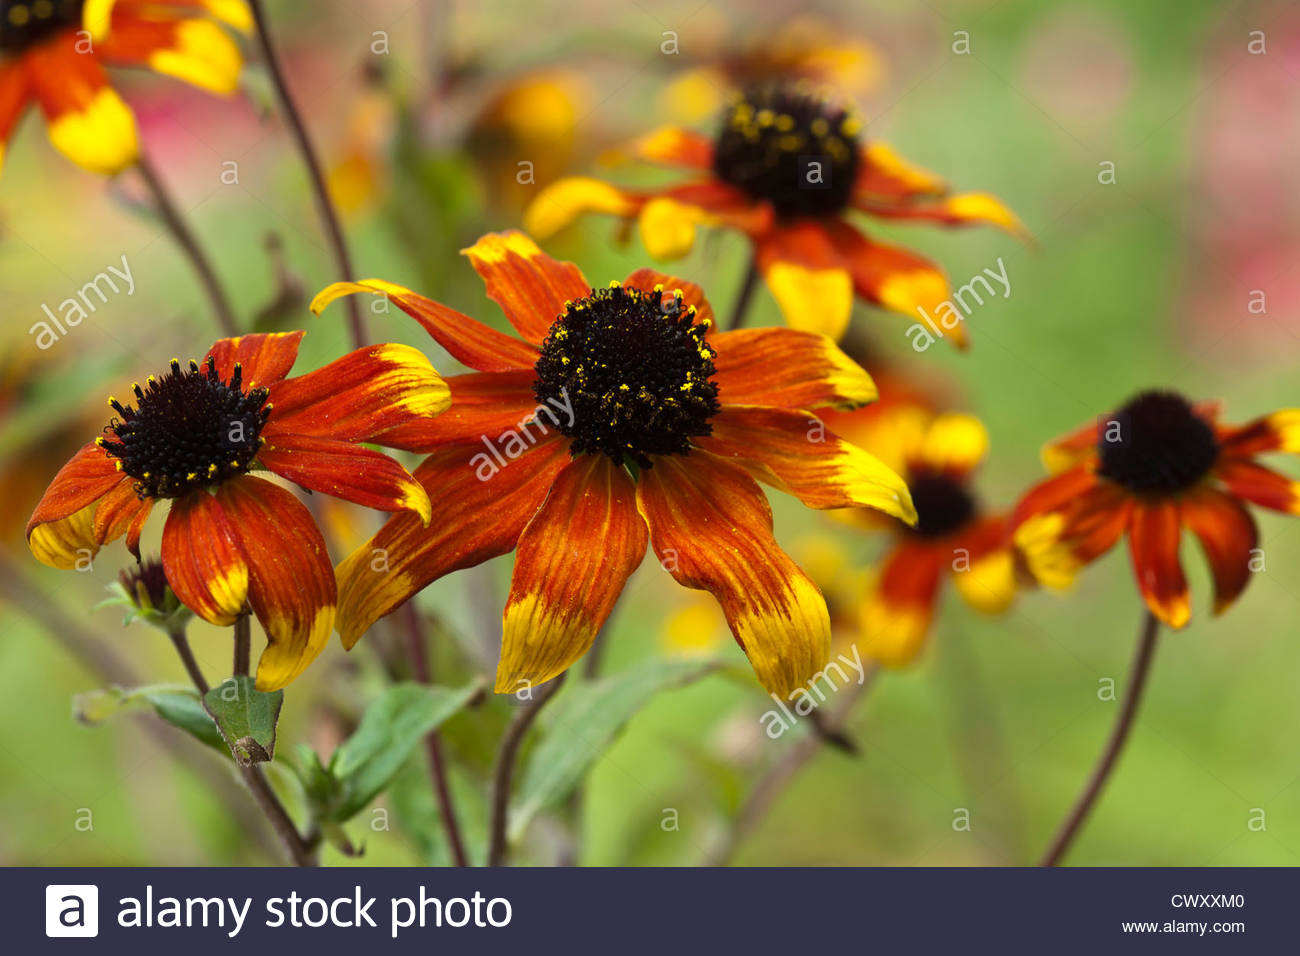 Rudbeckia triloba prairie glow stock photos rudbeckia triloba browneyed susan rudbeckia triloba prairie glow summer flower perennial black orange yellow august tall garden plant mightylinksfo